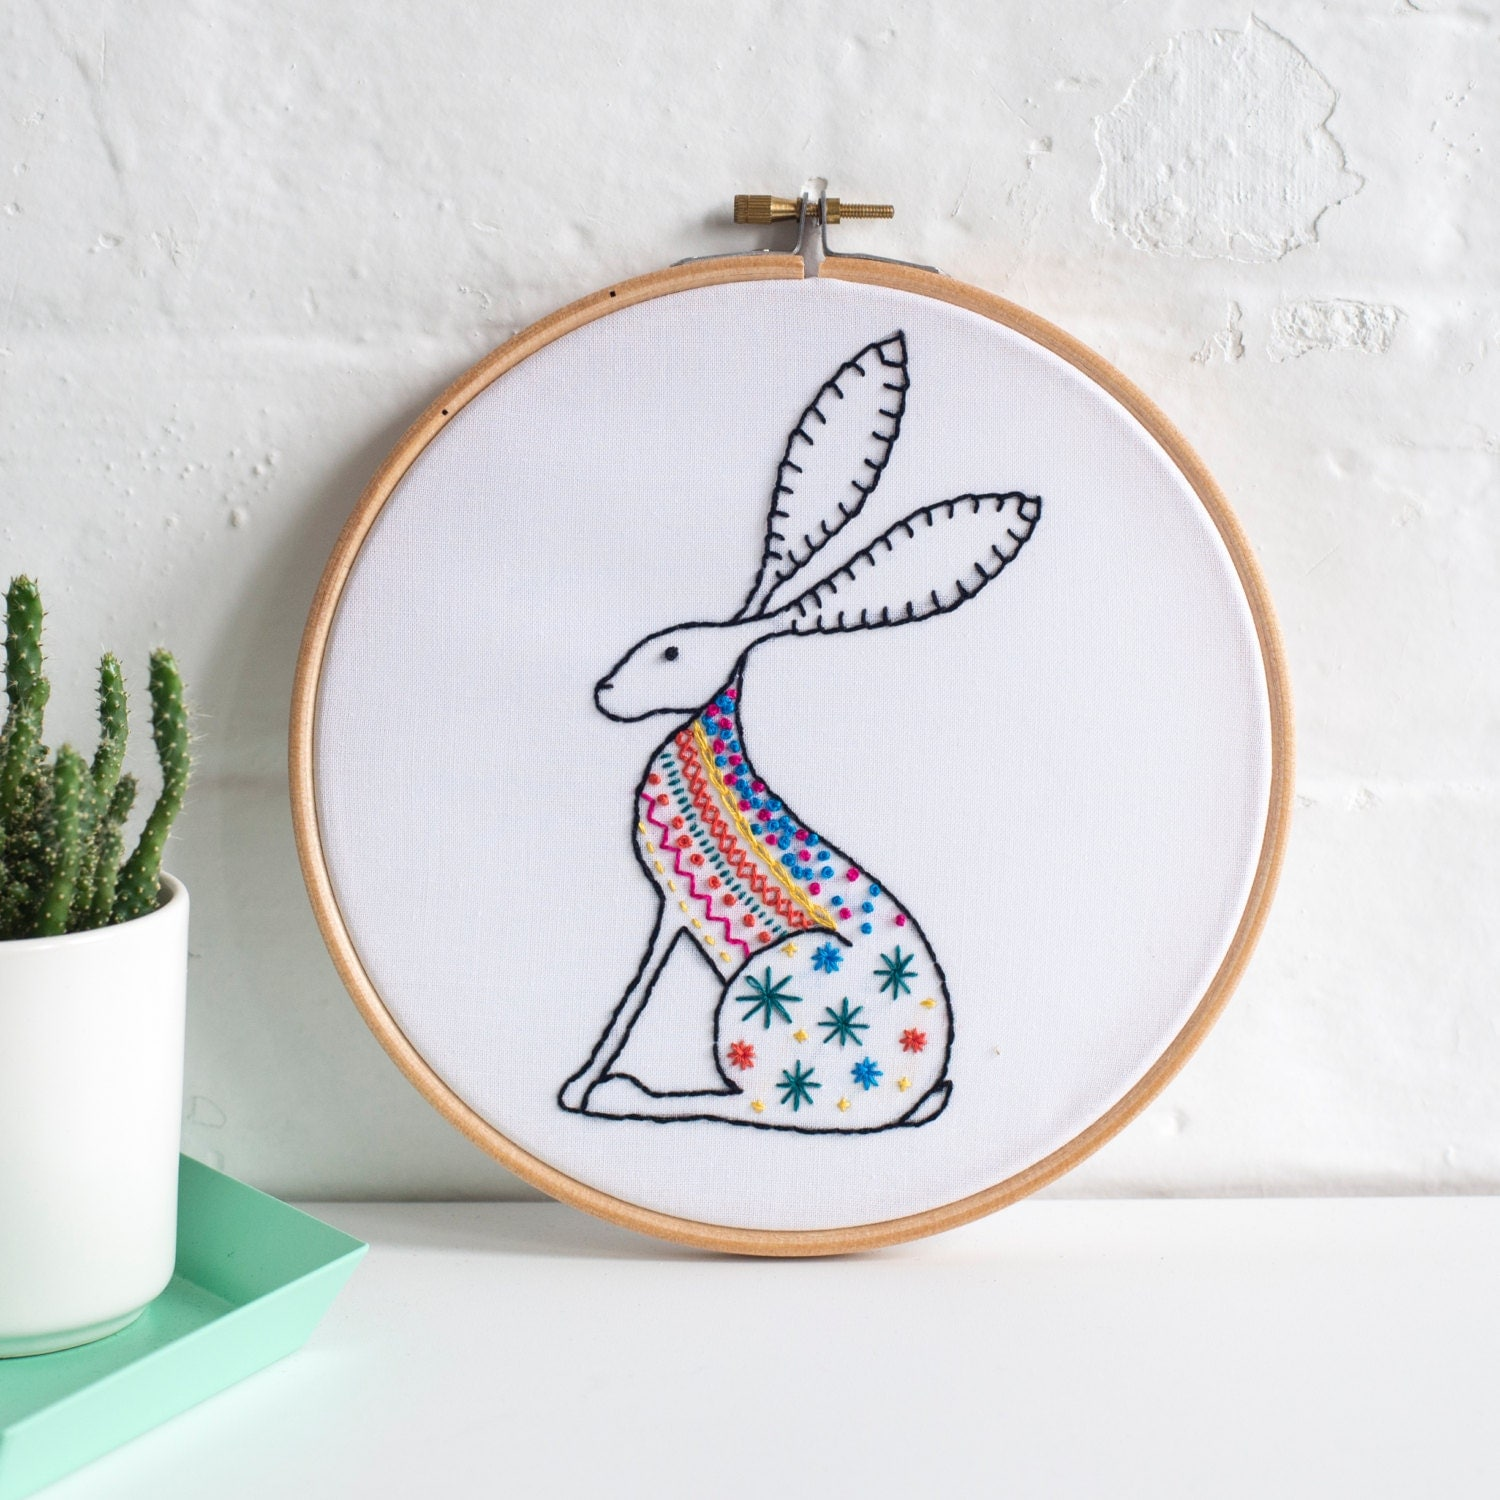 Hare contemporary embroidery kit hoop art learn